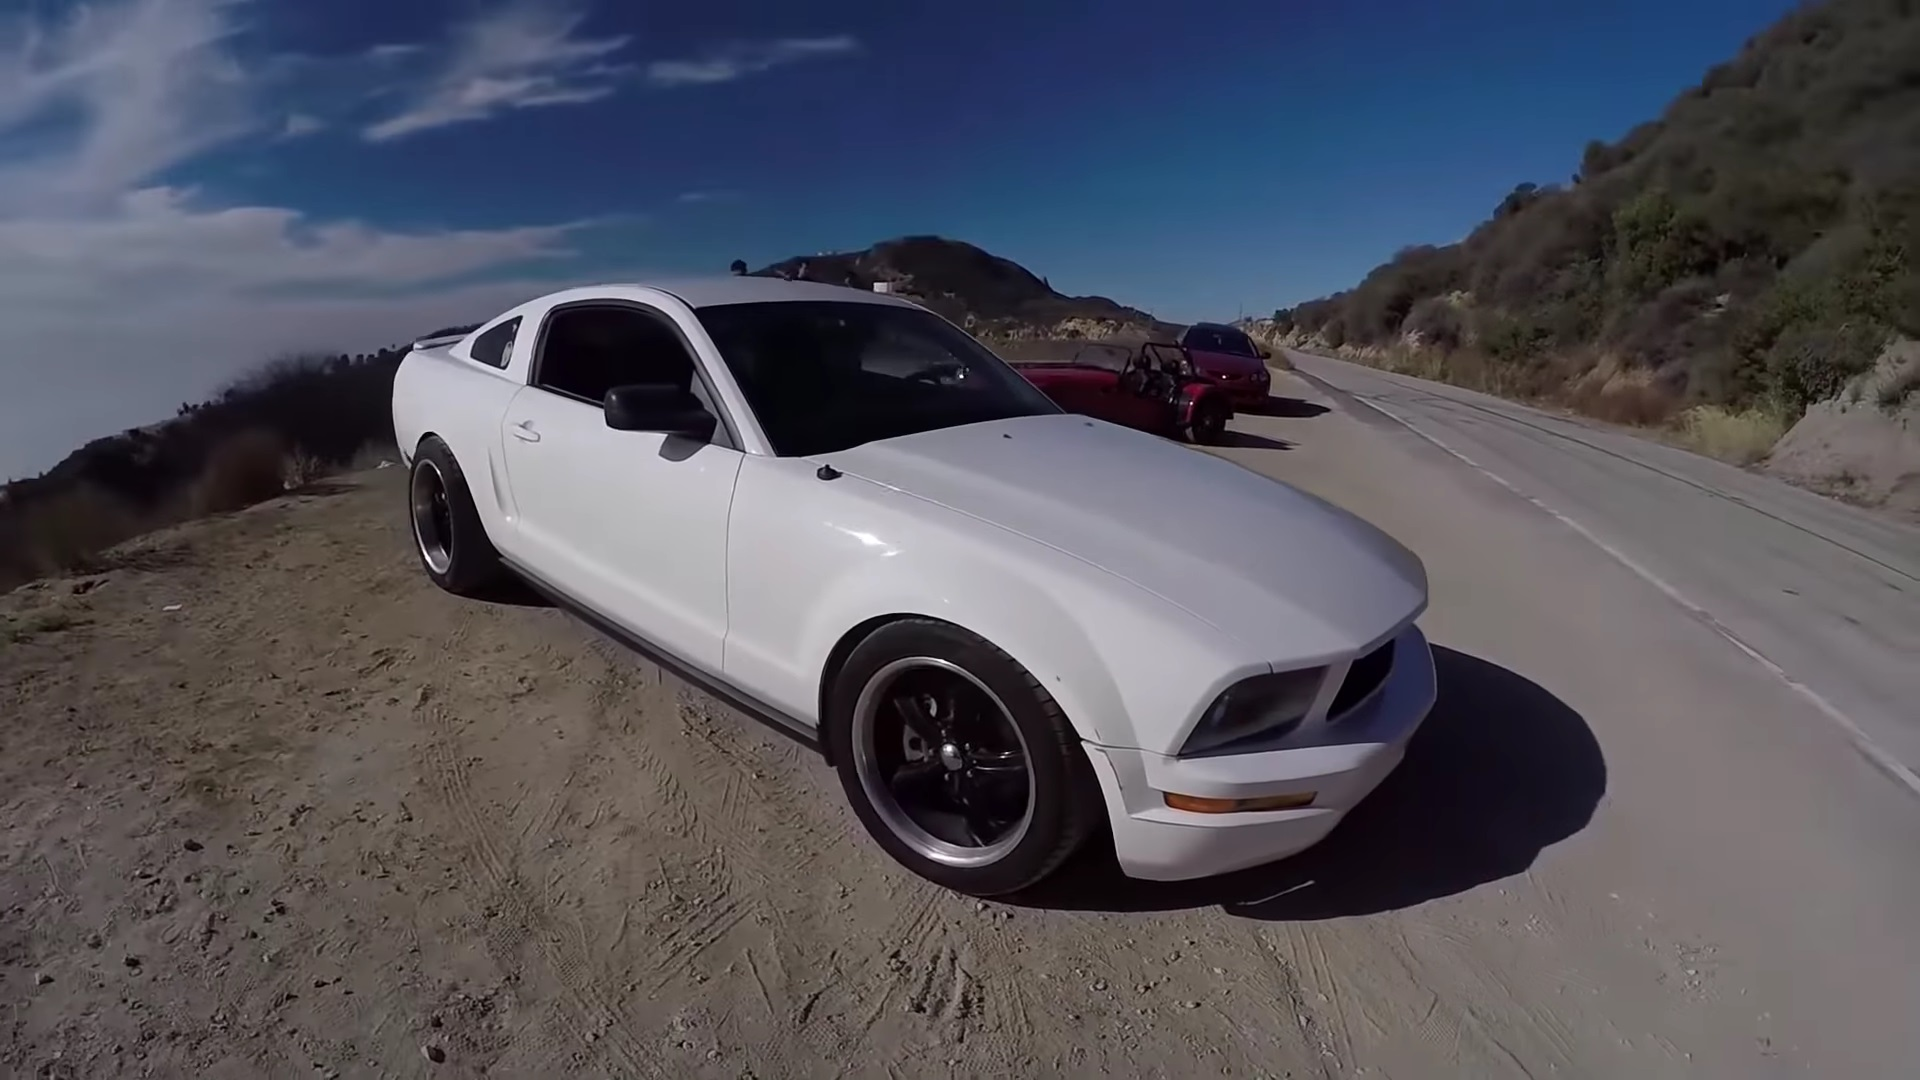 Video: Modified 2008 Ford Mustang V6 One Take